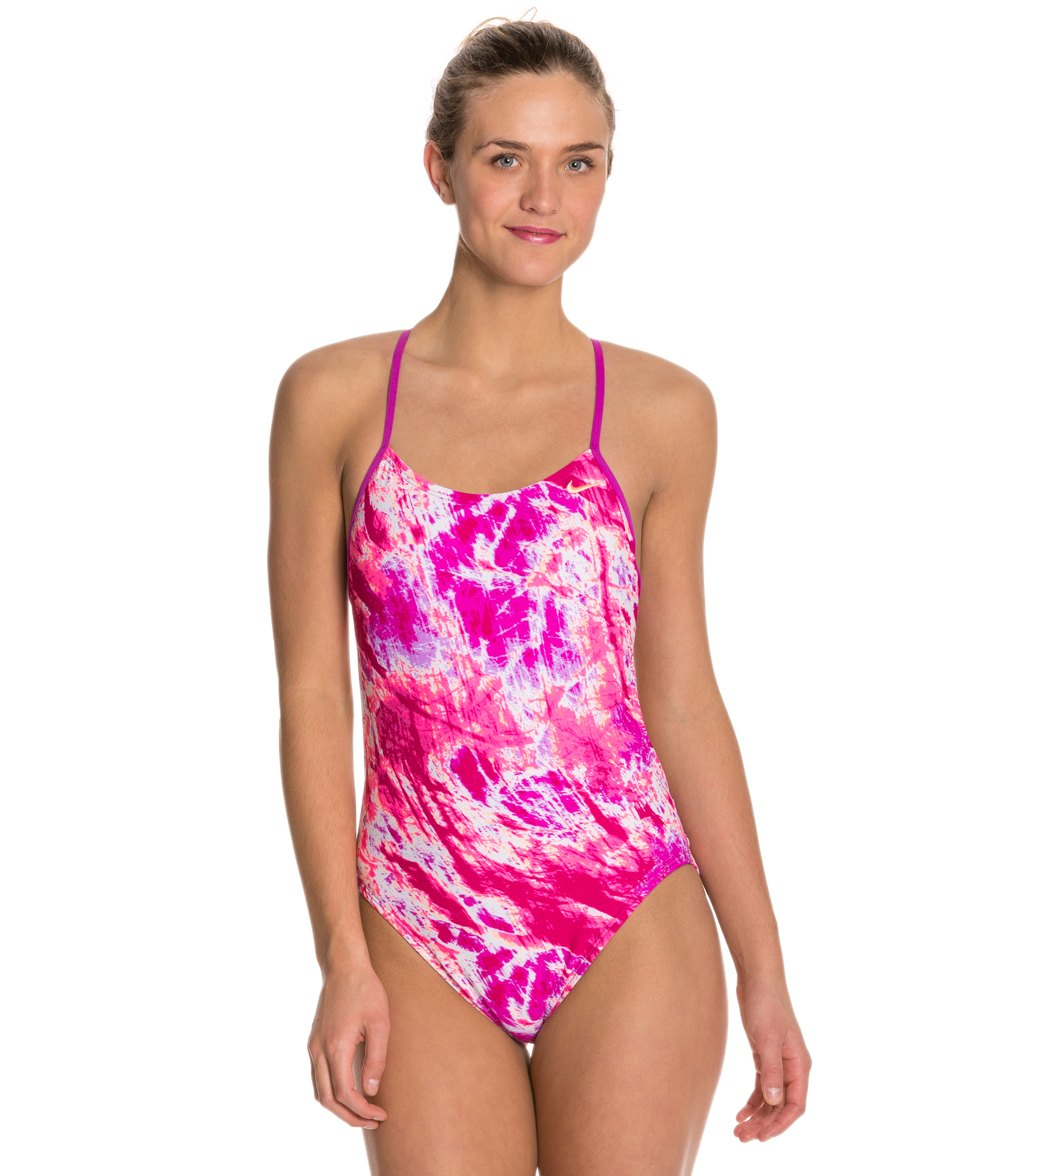 Nike Swim Acid Wash Cut Out Tank One Piece Swimsuit at SwimOutlet.com -  Free Shipping